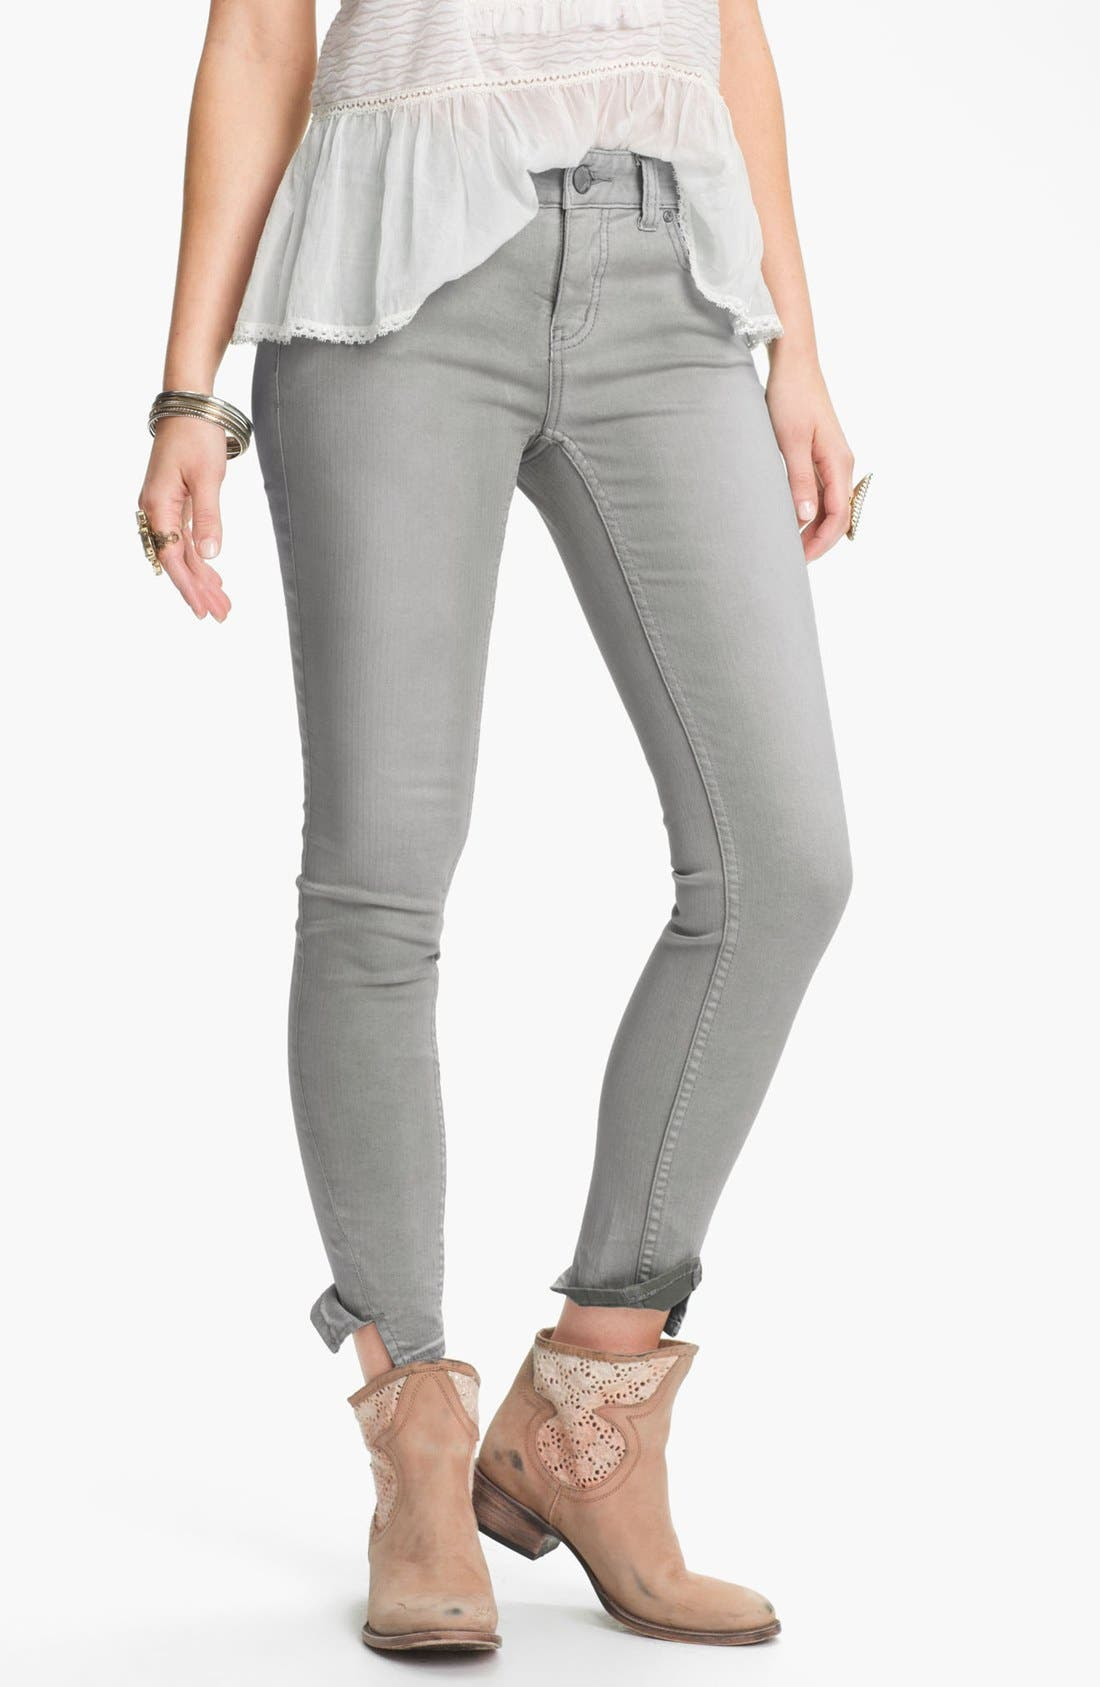 Main Image - Free People Crop Stretch Denim Skinny Jeans (Desi Wash)